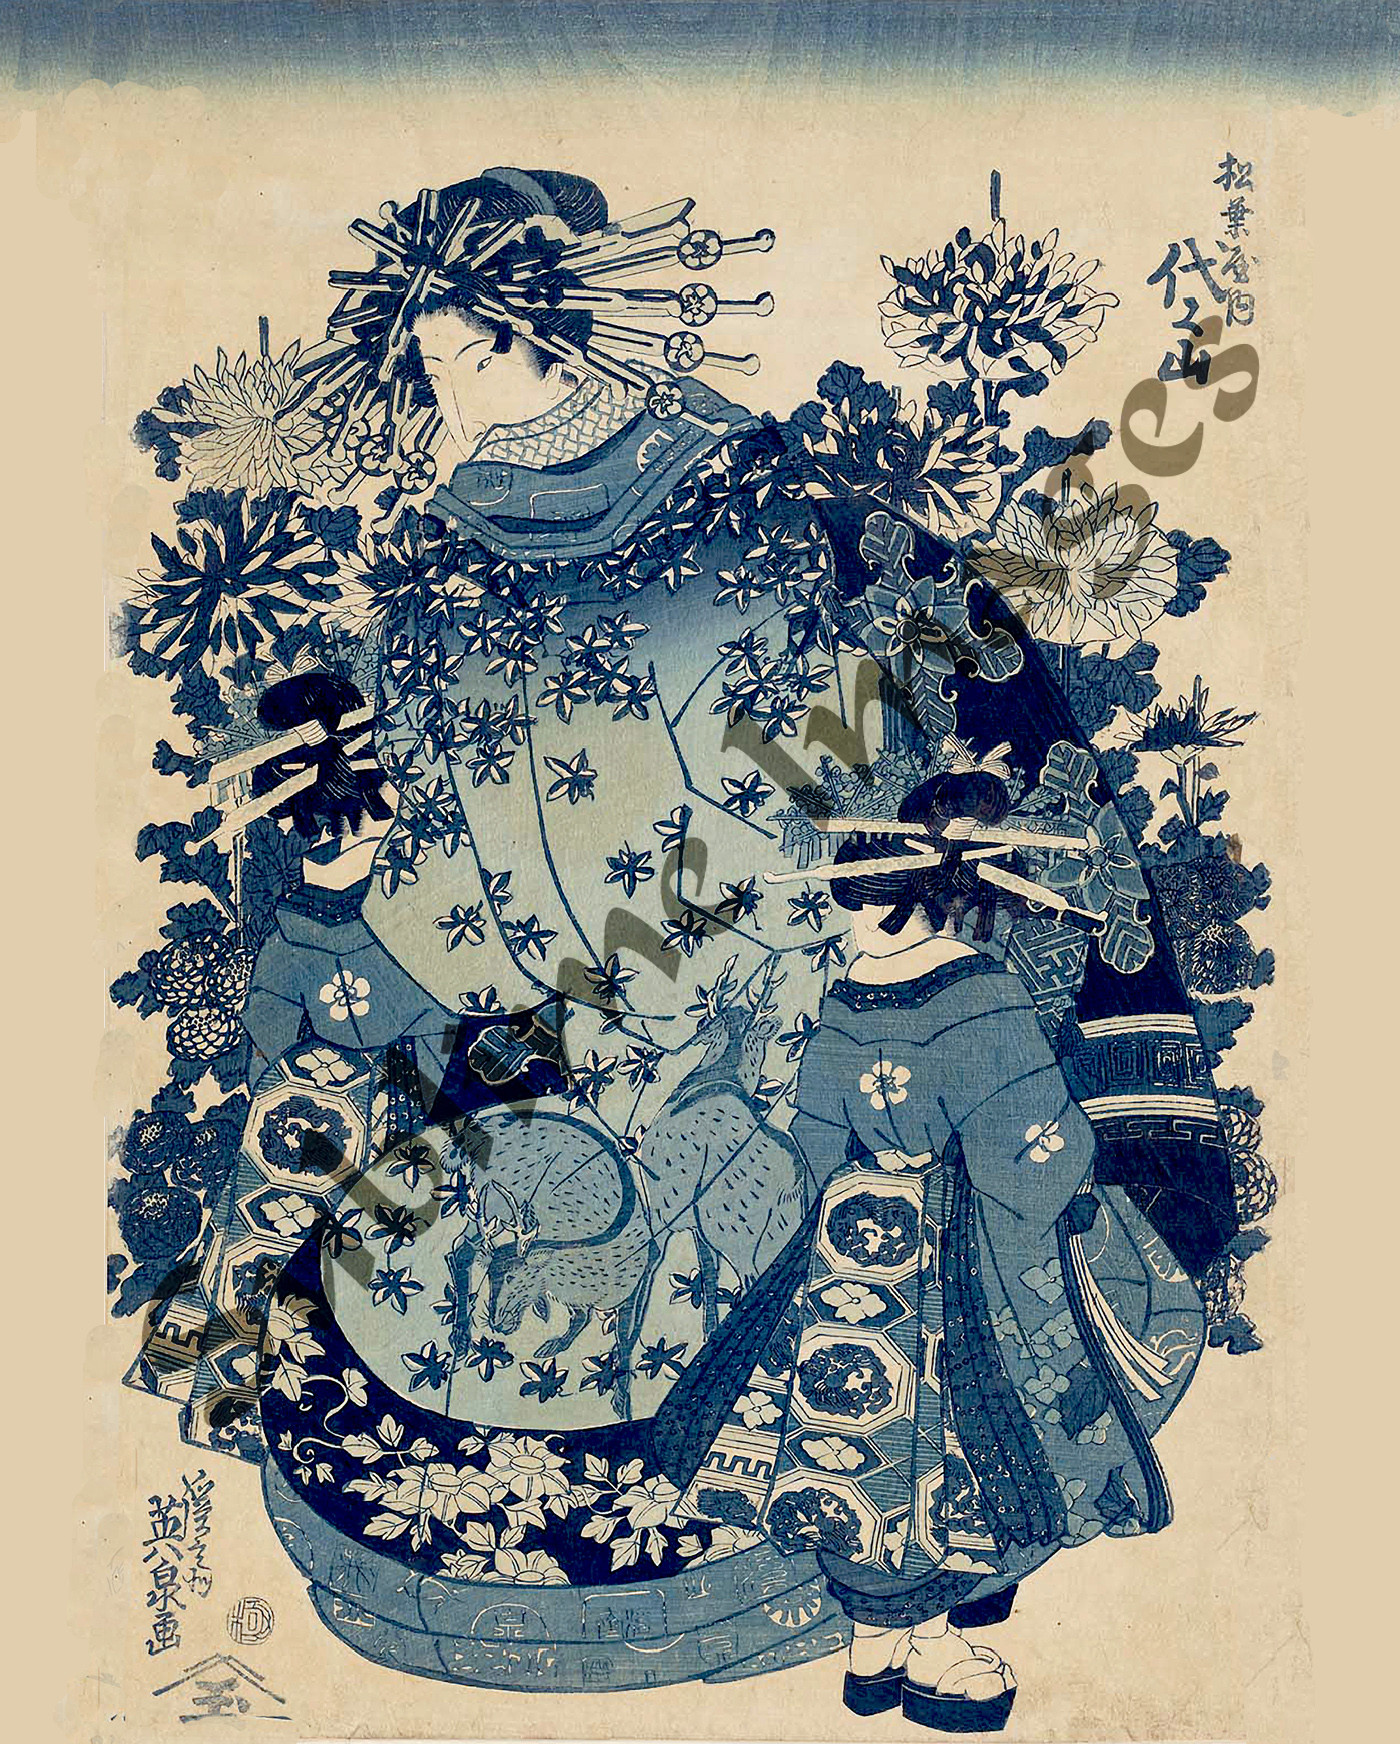 JP004 - Ukiyo-e (Japanese Prints) - Reproduction Ceramic ...